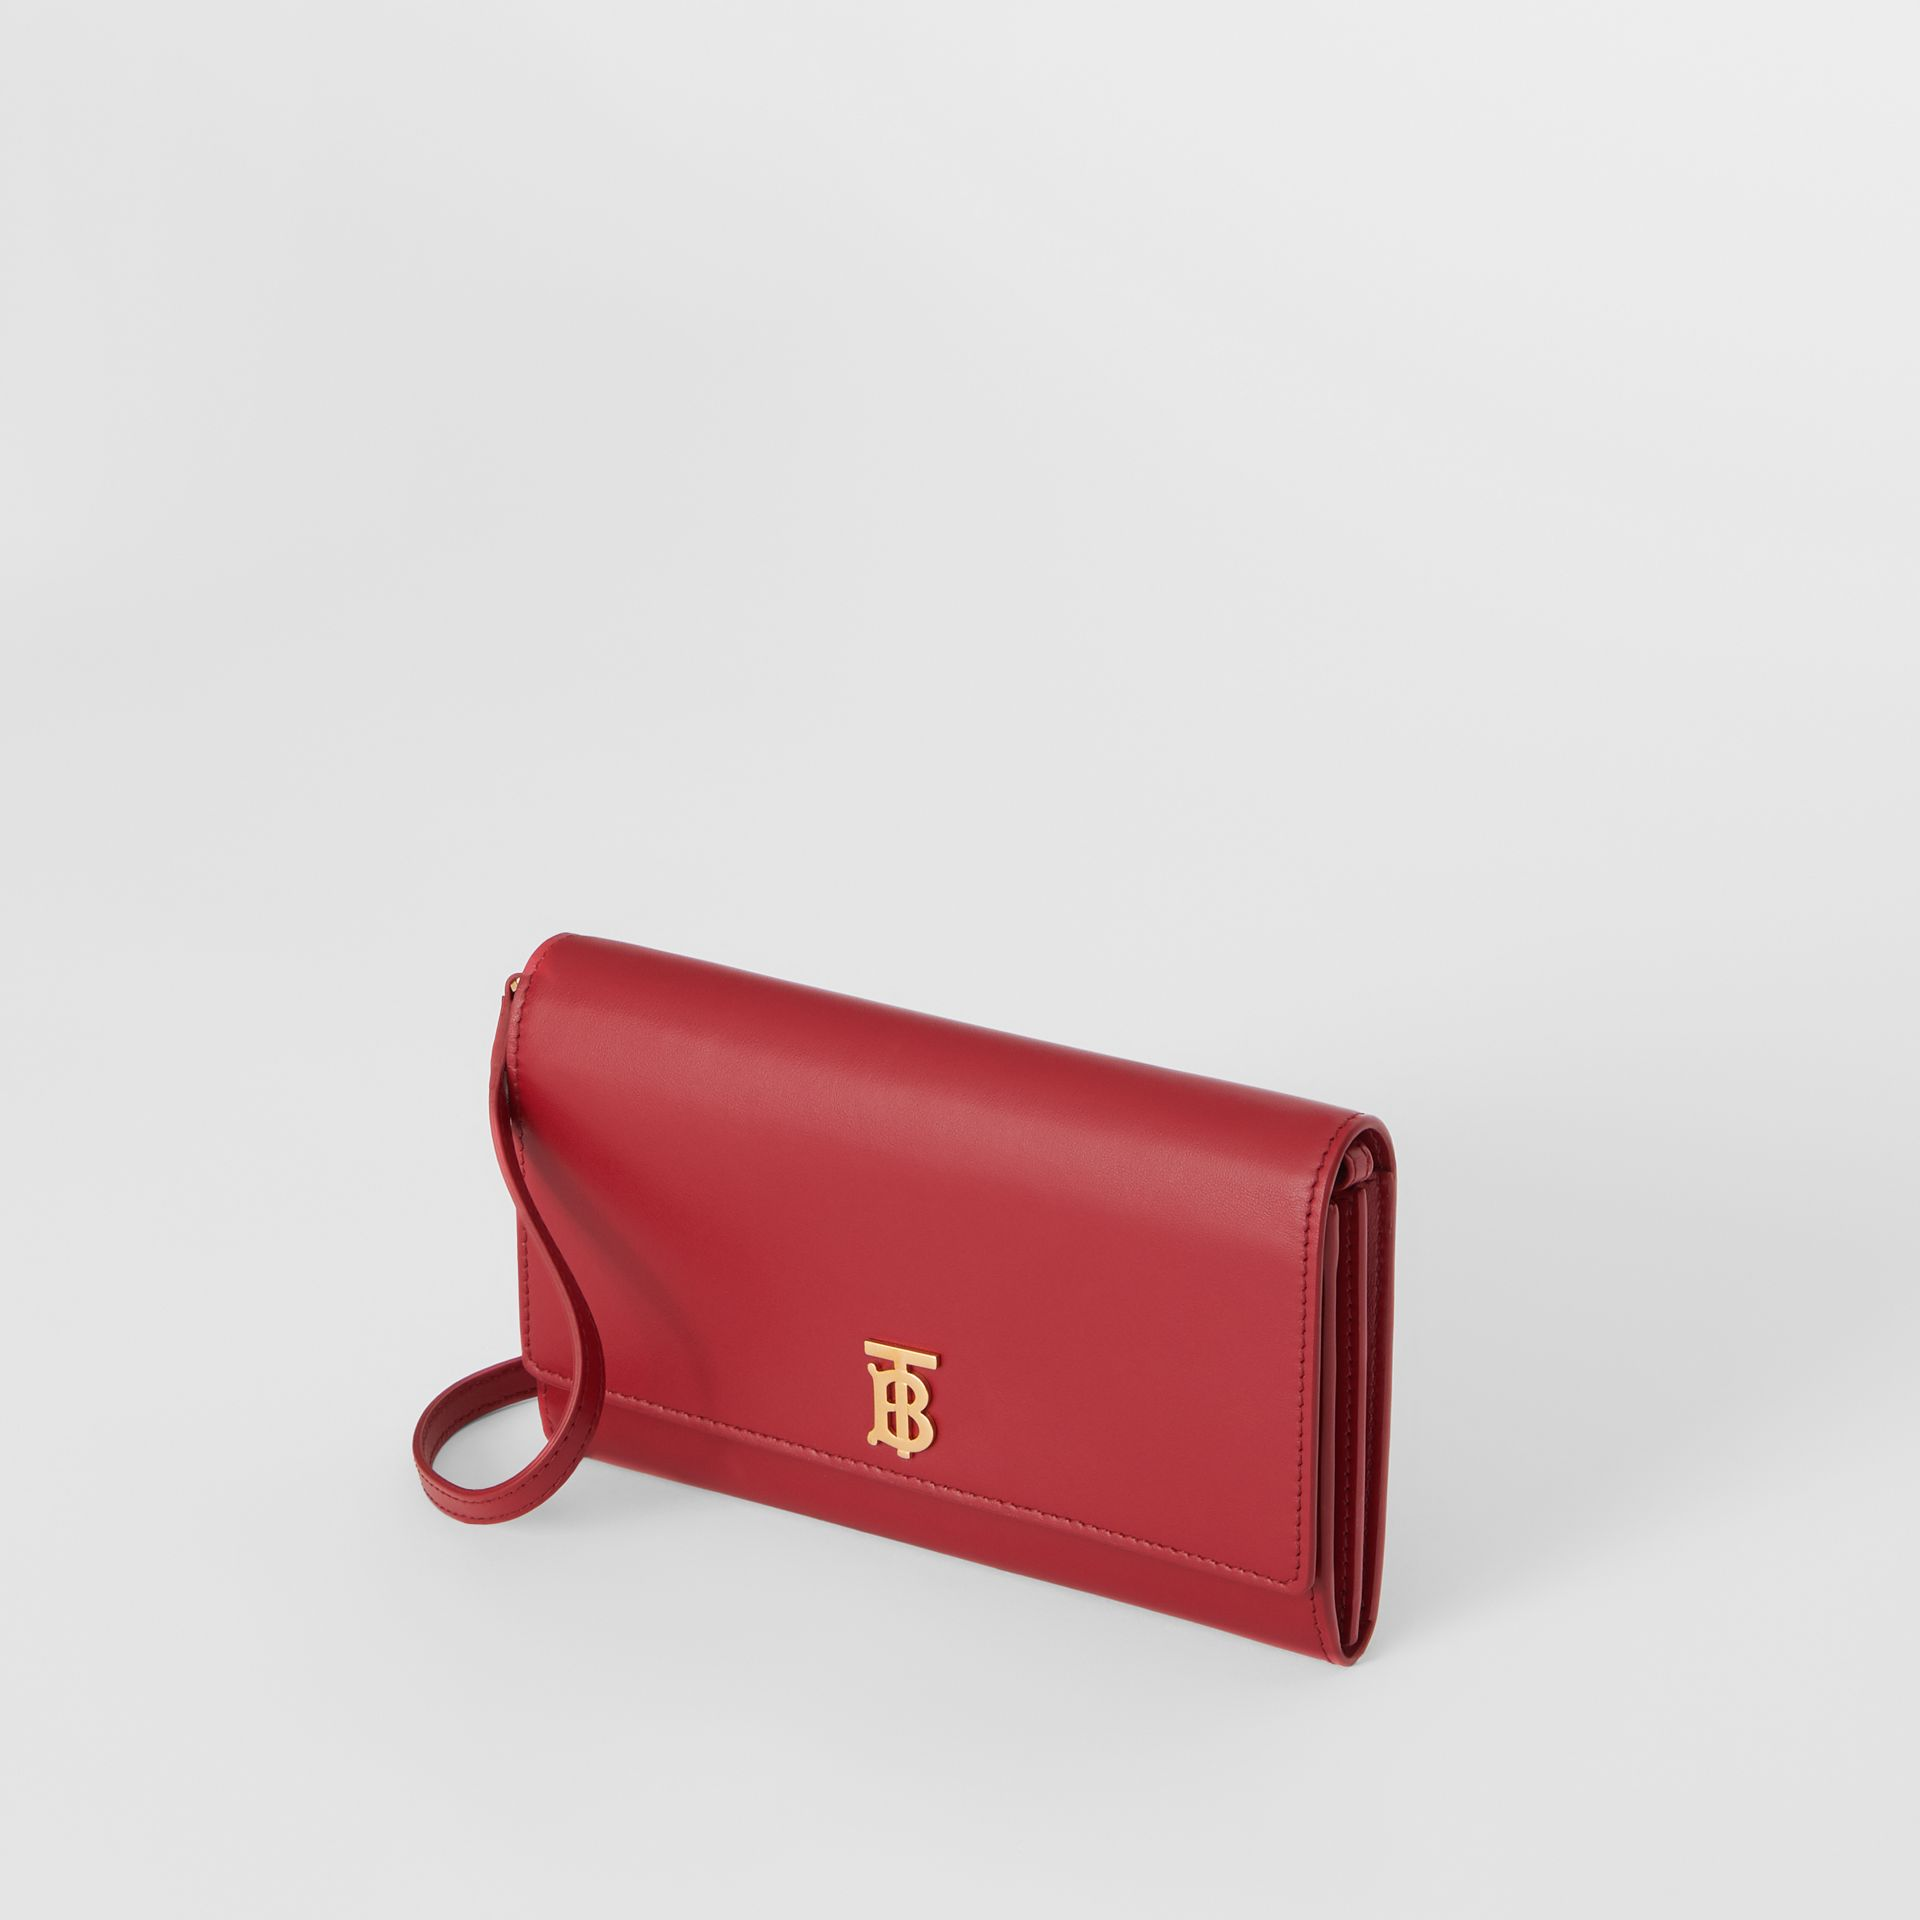 Monogram Motif Leather Wallet with Detachable Strap in Crimson - Women | Burberry United Kingdom - gallery image 3